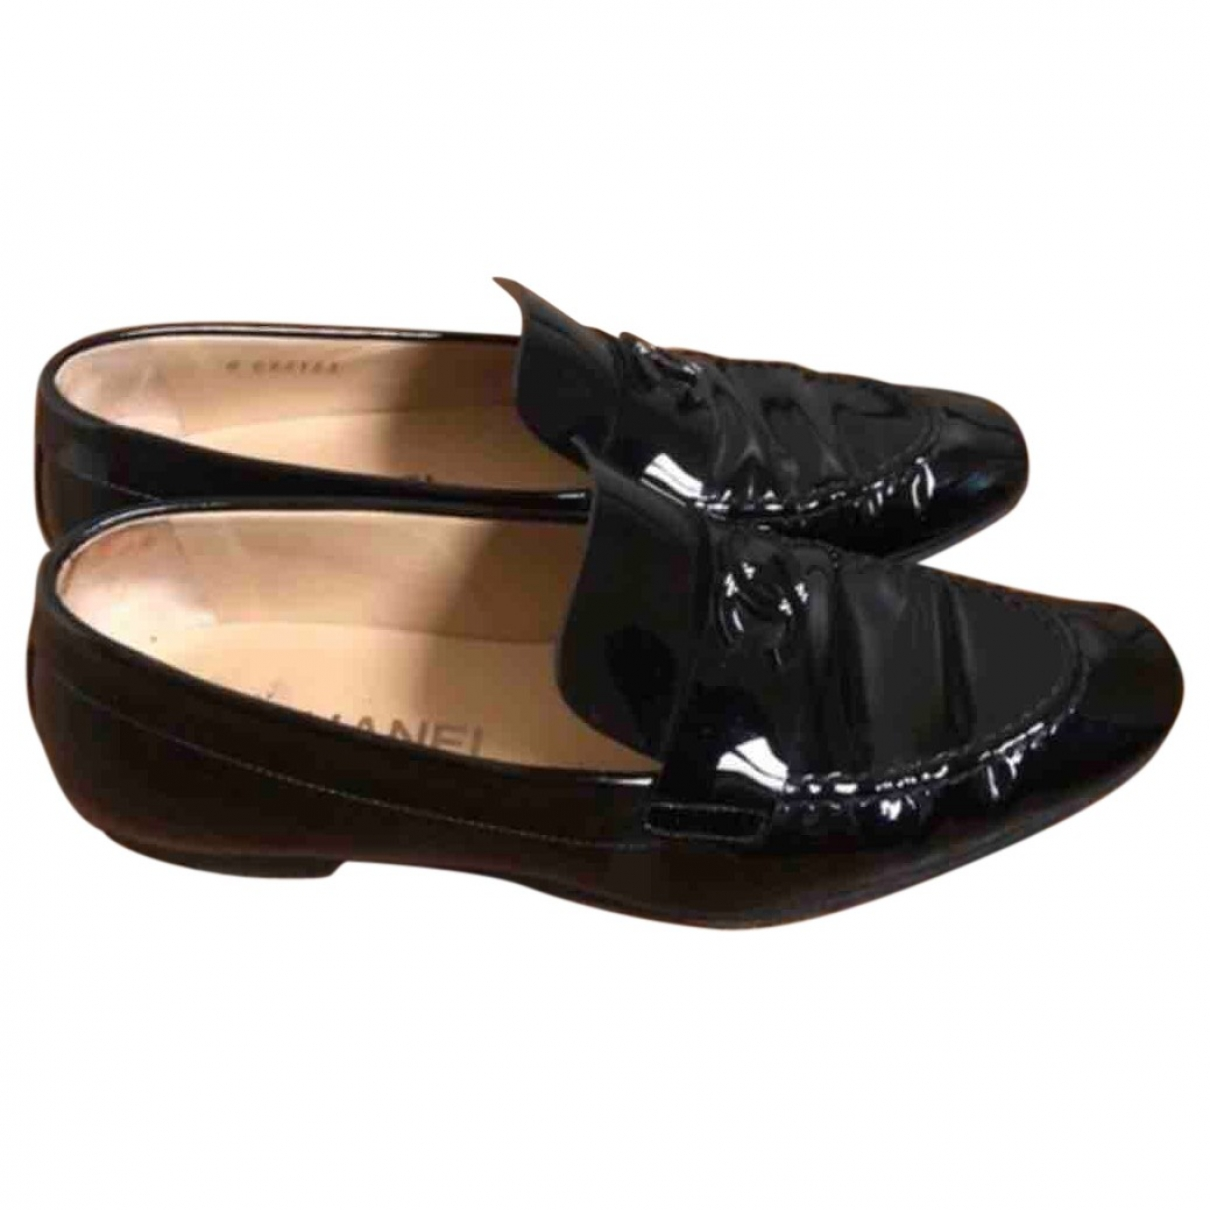 Chanel \N Black Patent leather Flats for Women 37 EU